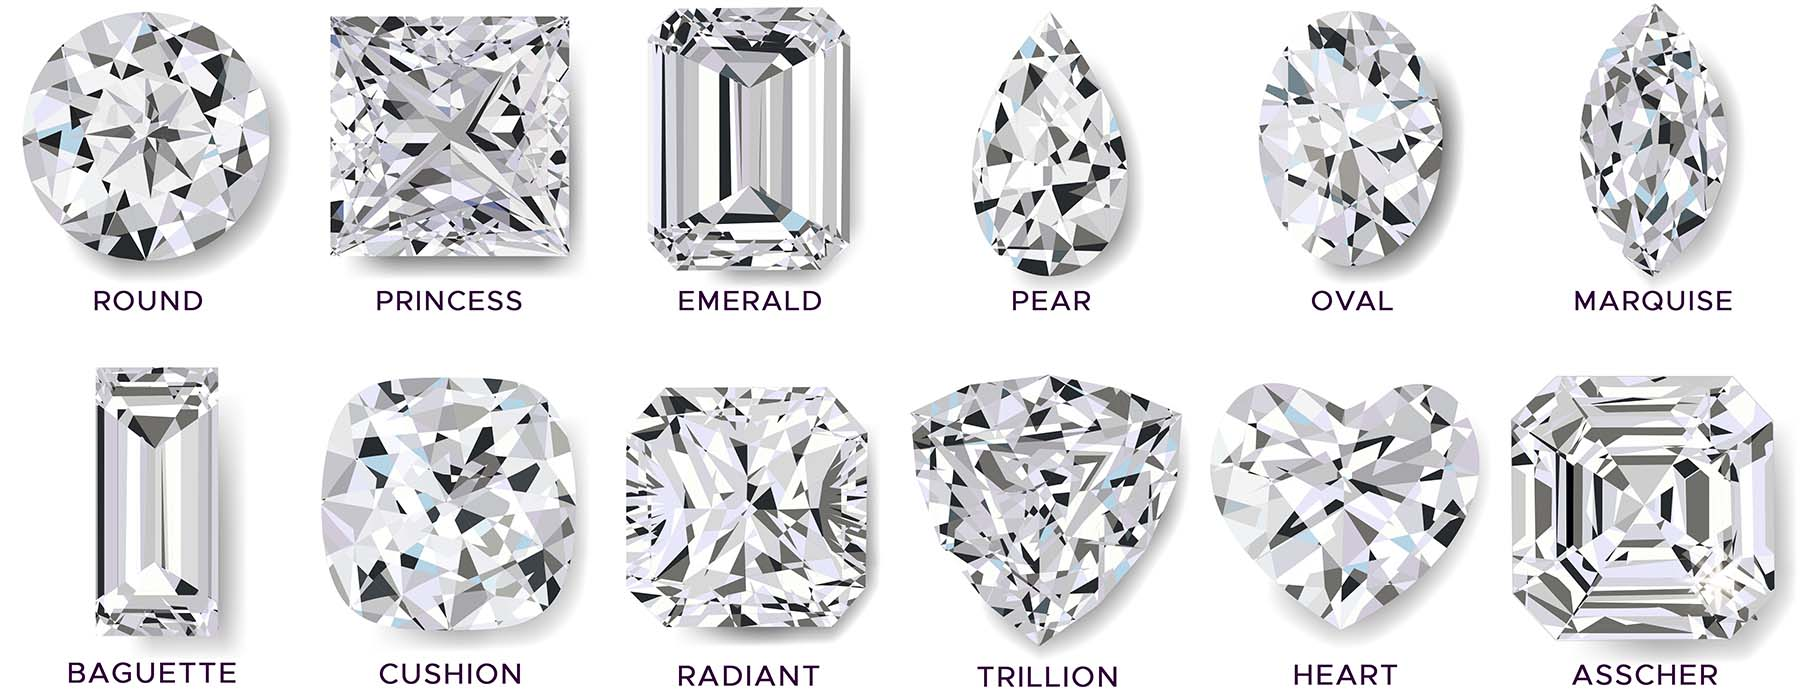 Moissanite Different Cuts